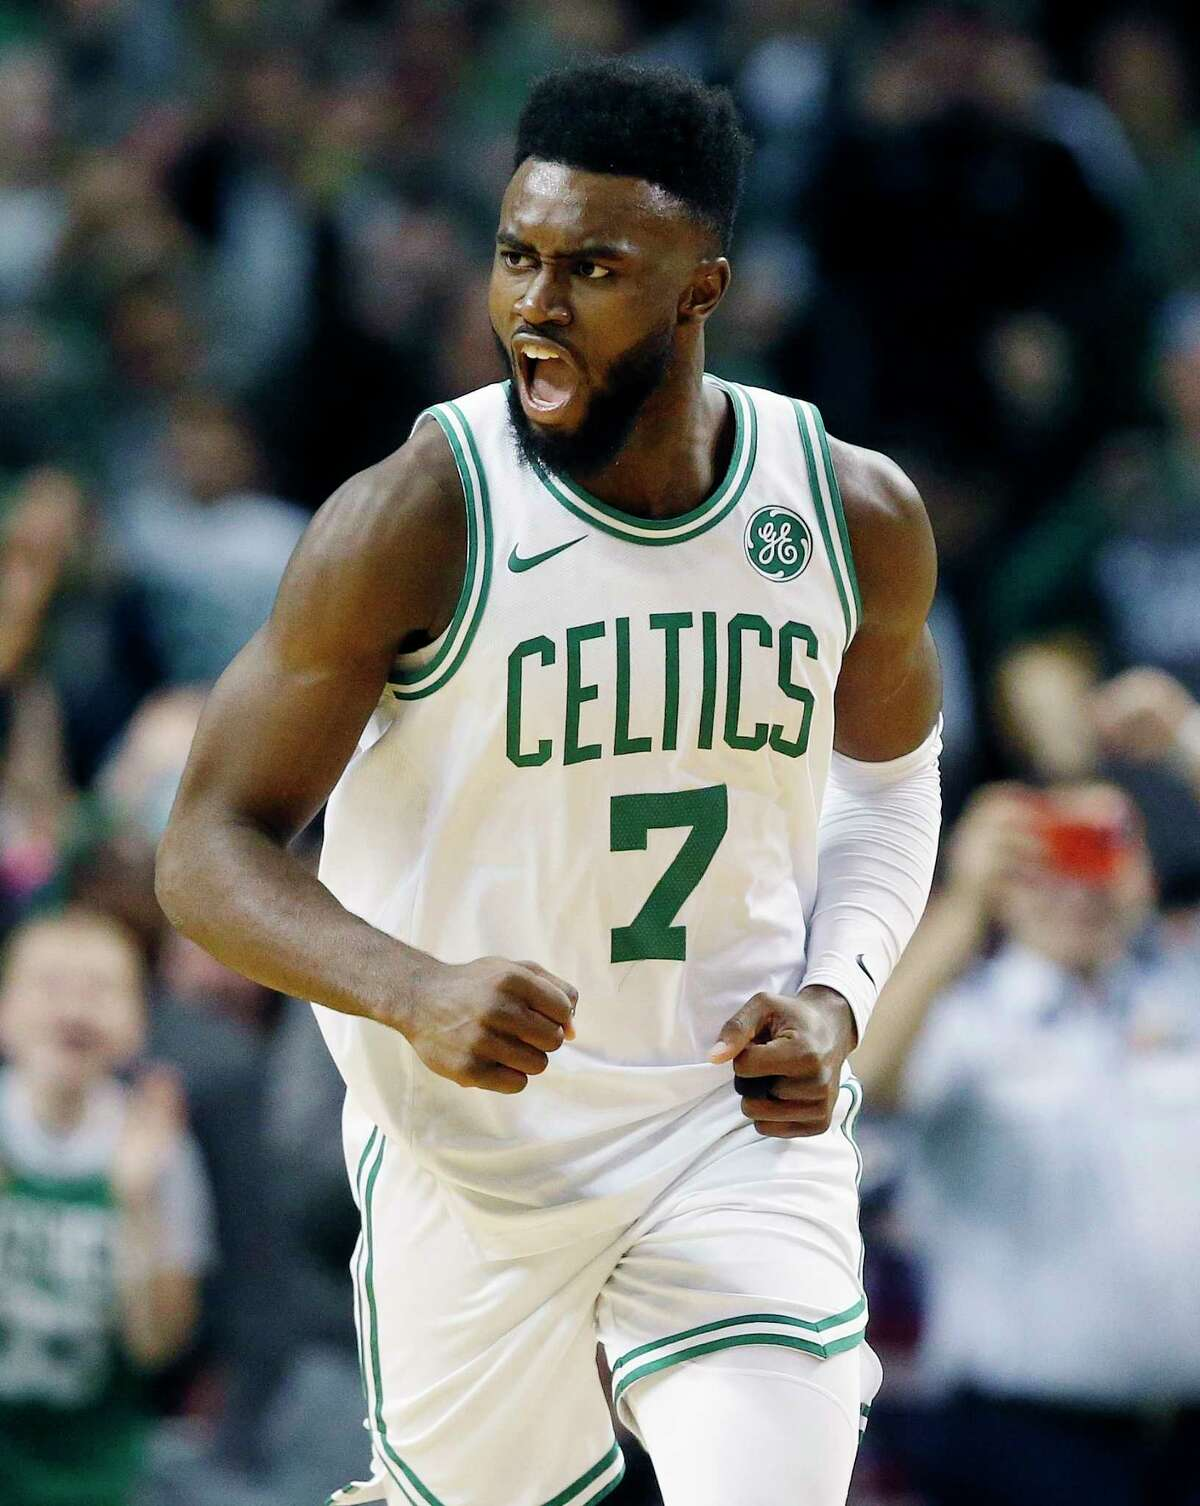 Boston Celtics' Jaylen Brown (7) reacts after scoring during the fourth quarter of an NBA basketball game against the Charlotte Hornets in Boston, Friday, Nov. 10, 2017. (AP Photo/Michael Dwyer) ORG XMIT: MAMD109